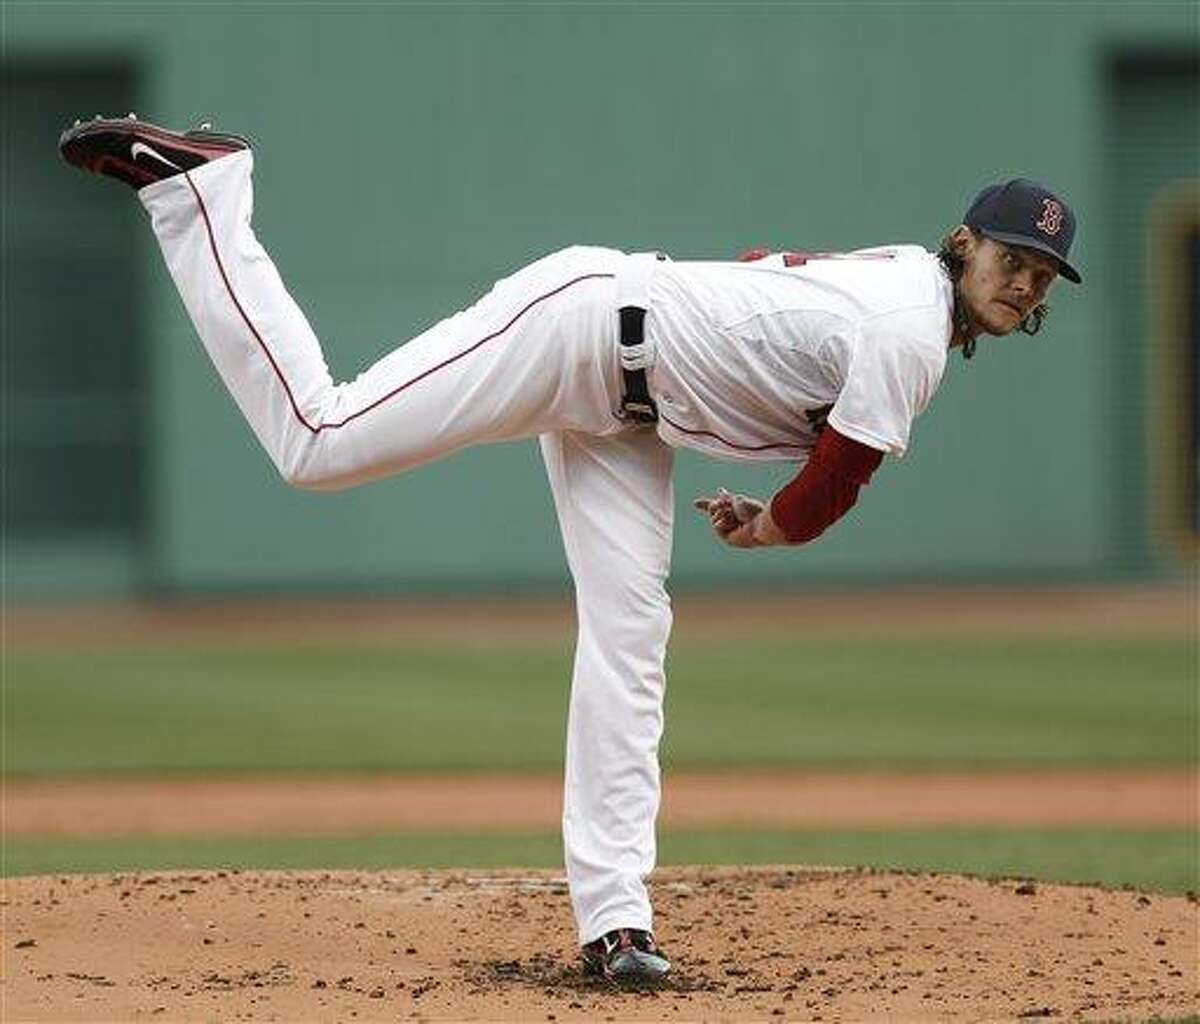 Boston Red Sox starting pitcher Clay Buchholz delivers against the Tampa Bay Rays during the first inning of a baseball game at Fenway Park in Boston Sunday, April 14, 2013. (AP Photo/Winslow Townson)